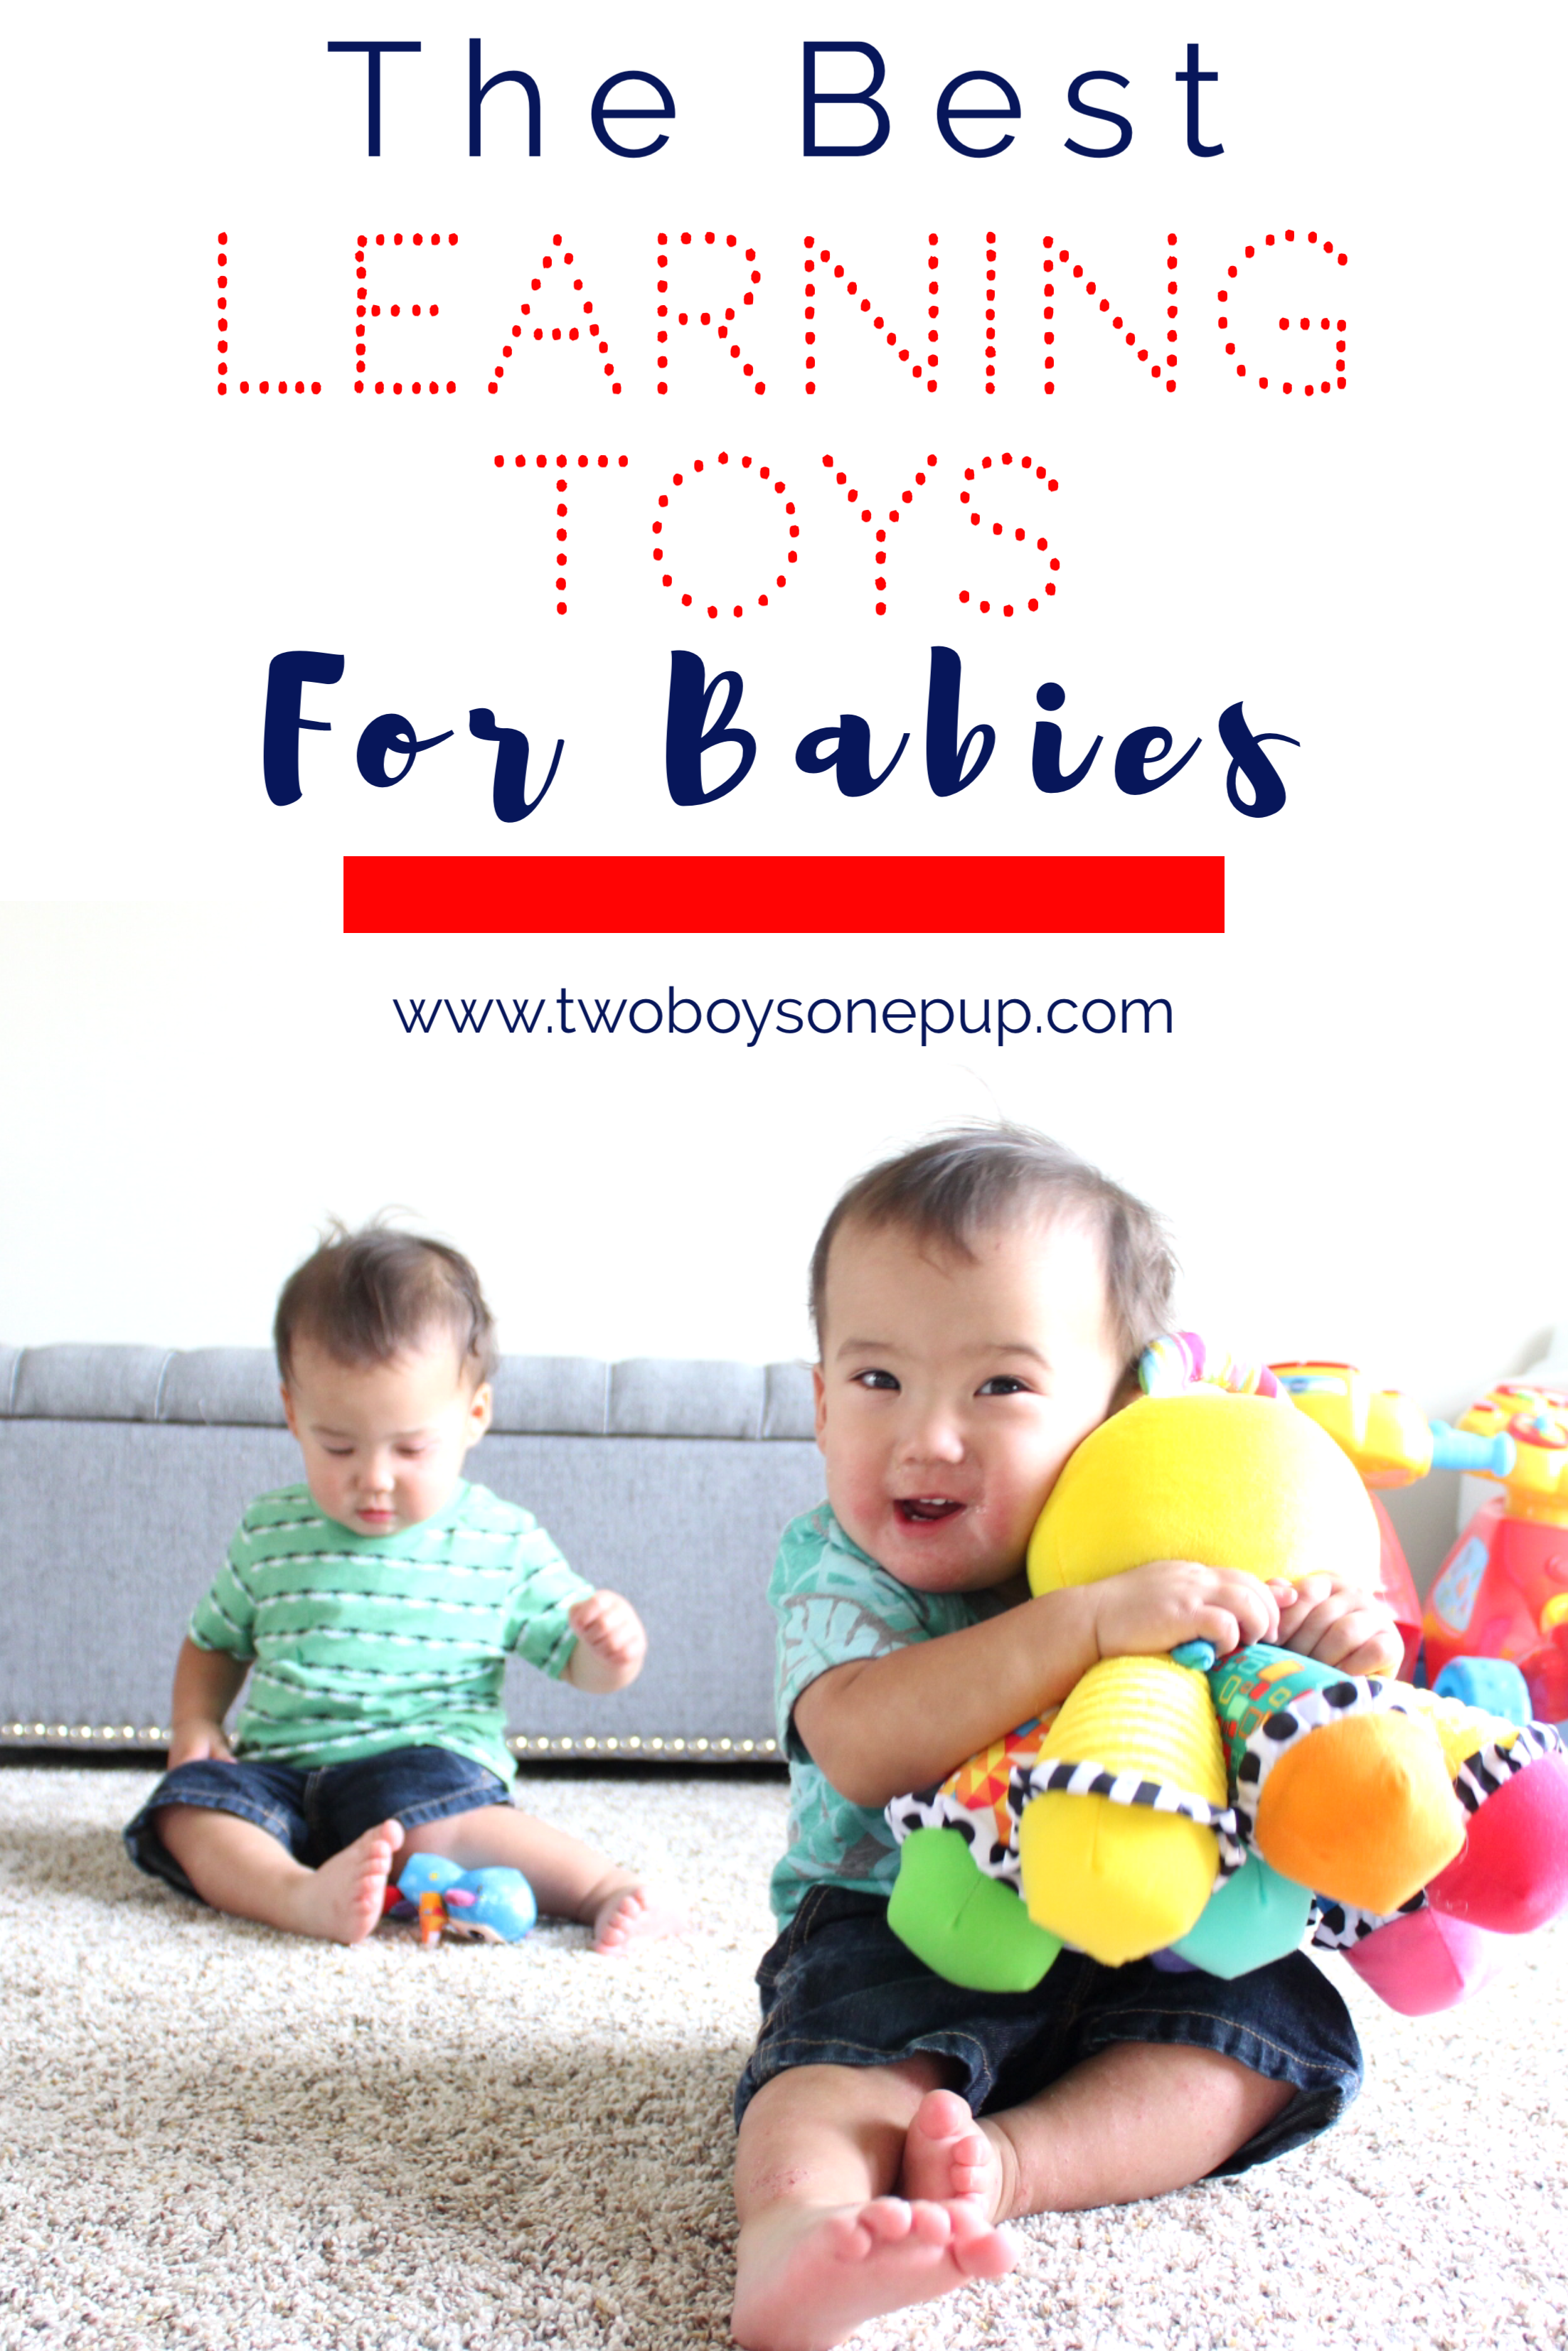 Best Learning Toys For Babies : The best learning toys for babies two boys one pup